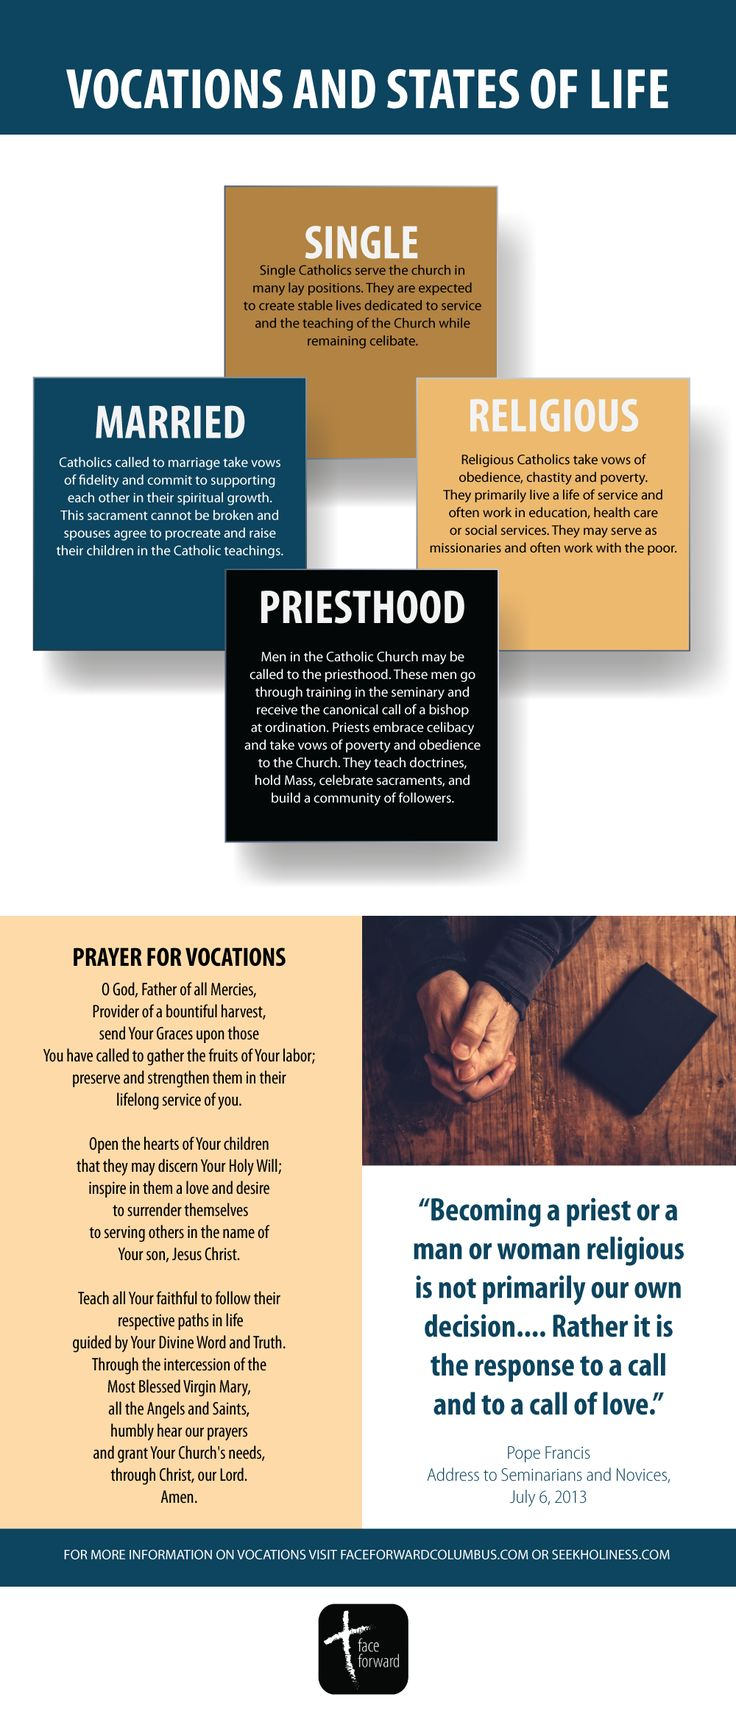 Vocations Infographic | States of Life - Single, Married, Religious, Priesthood | Prayer for Vocations | Pope Francis